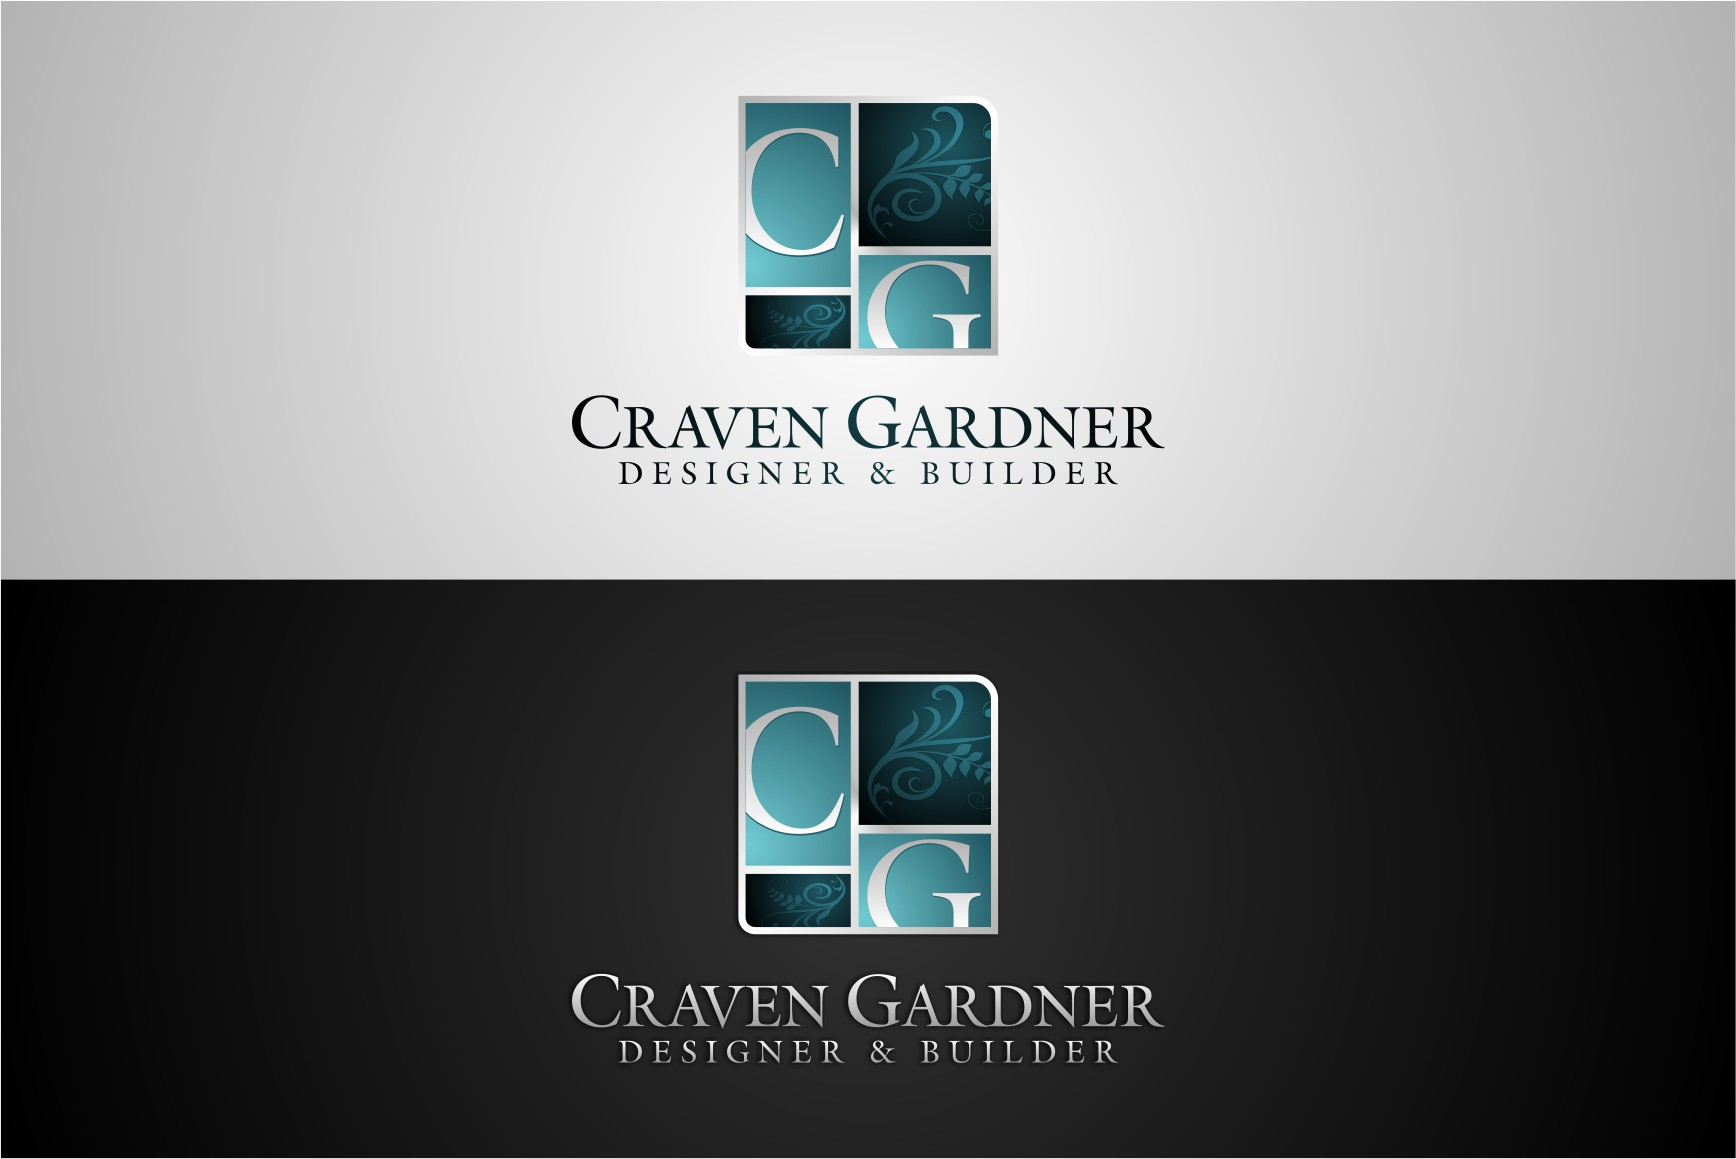 Help Craven Gardner with a new logo